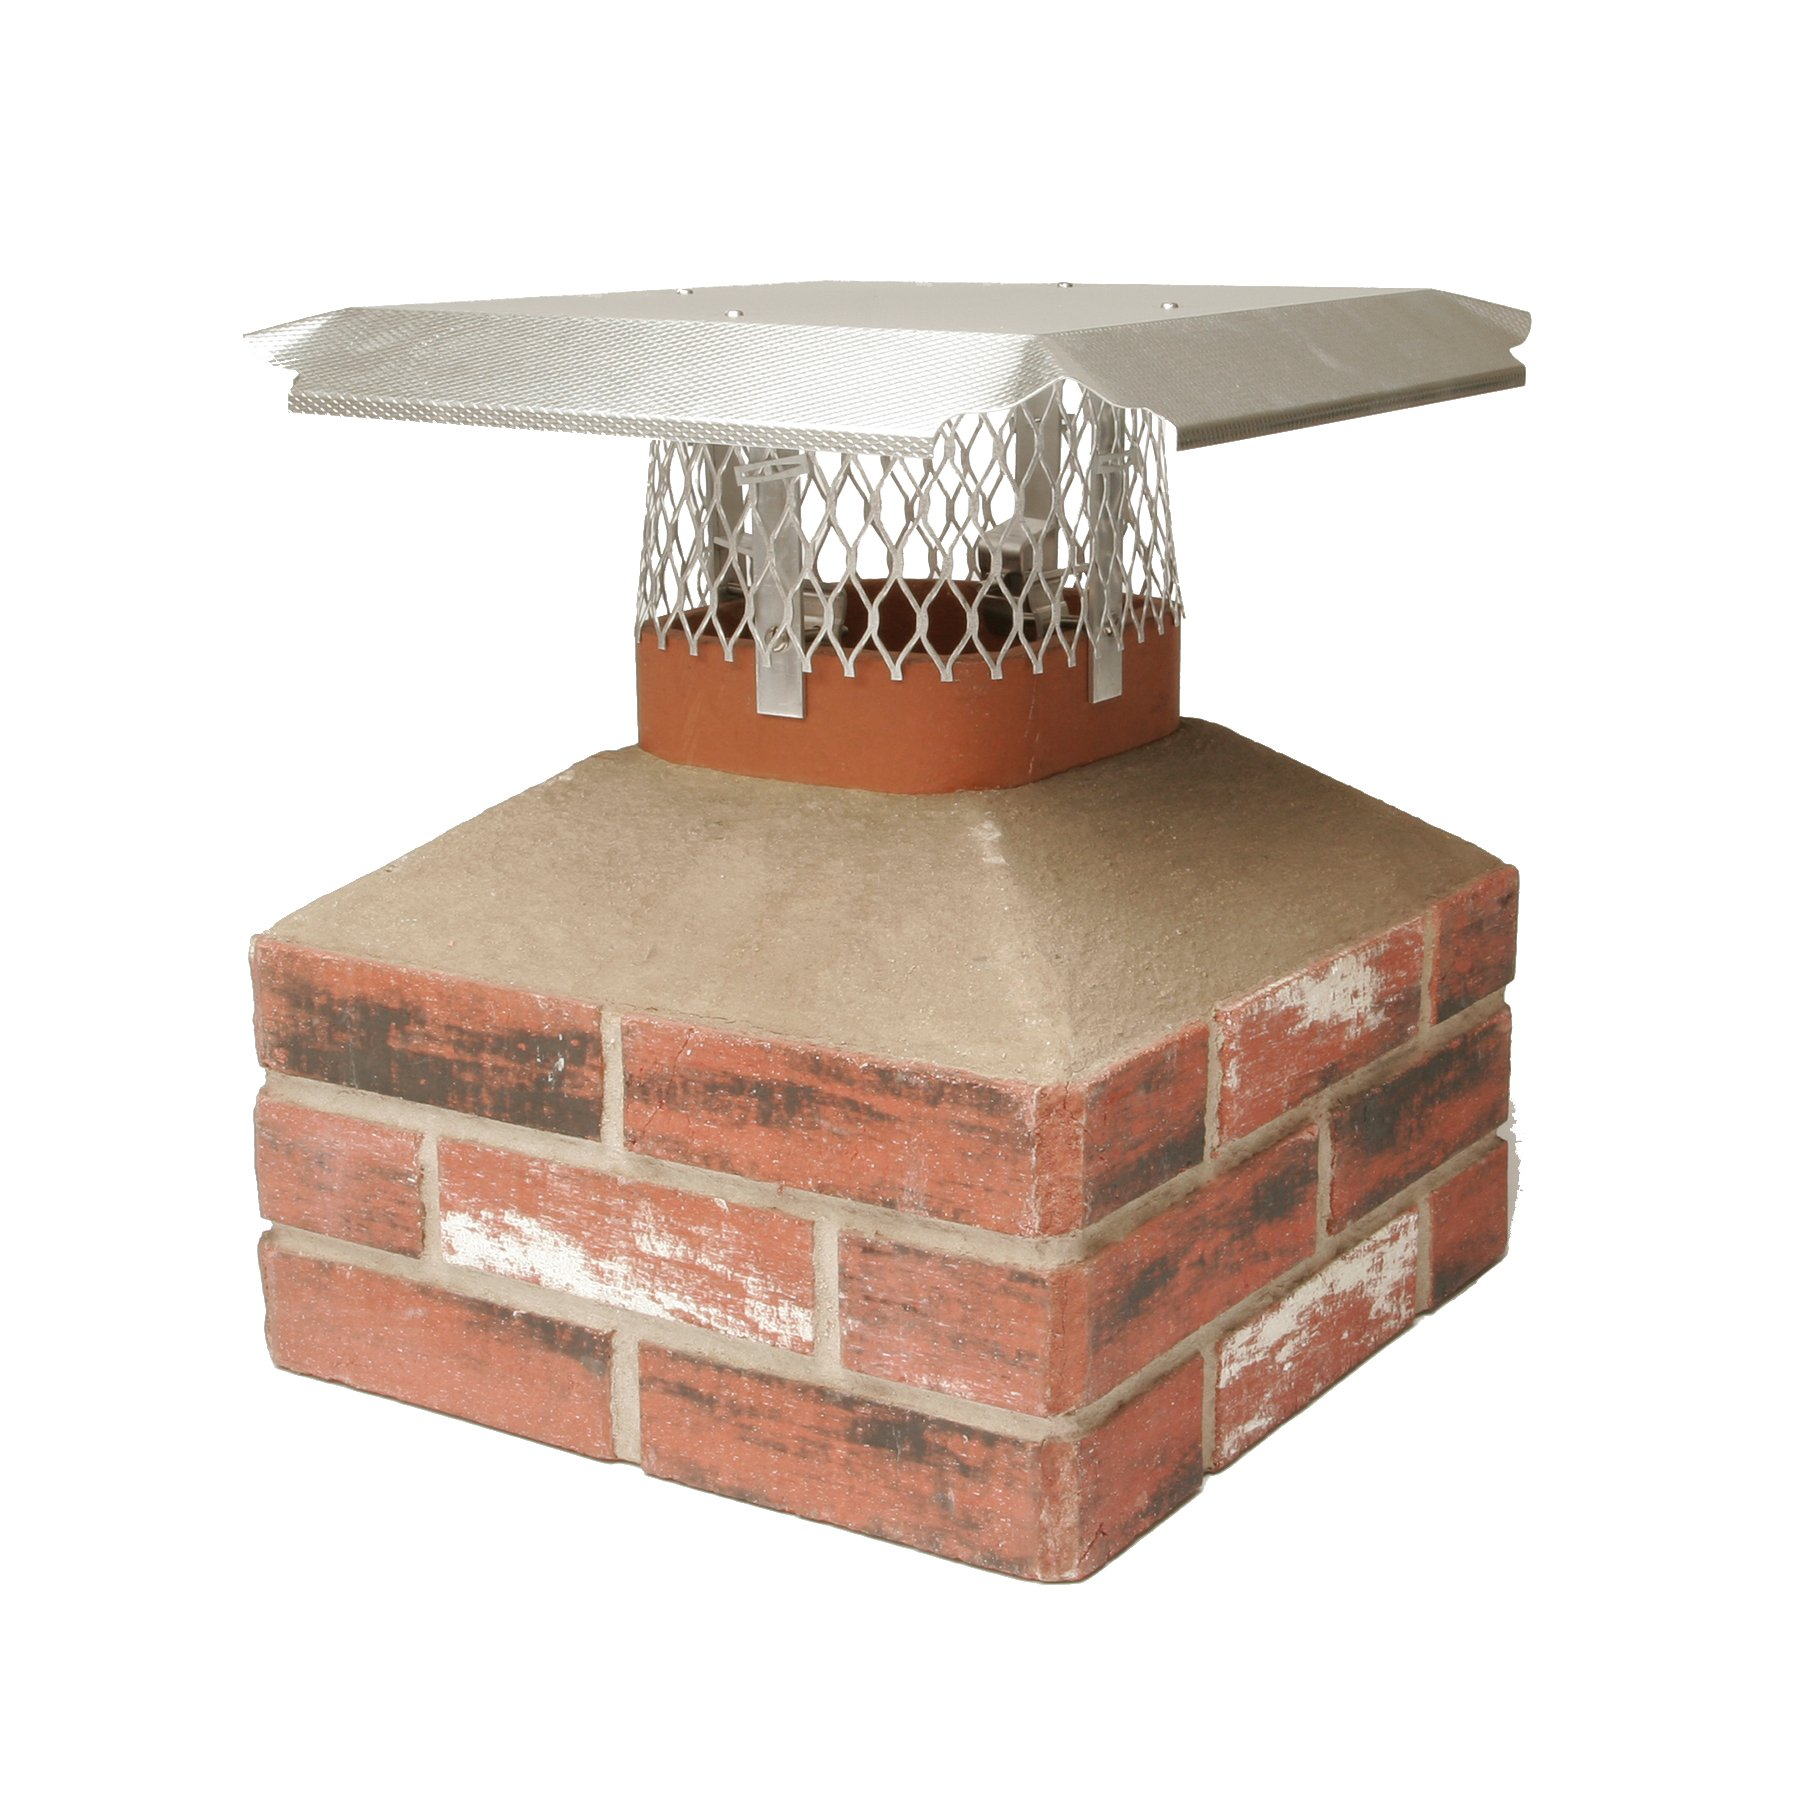 HY-C MF303 Duro Shield Single Flue Aluminum Multi-Fit Chimney Cap, Small by HY-C